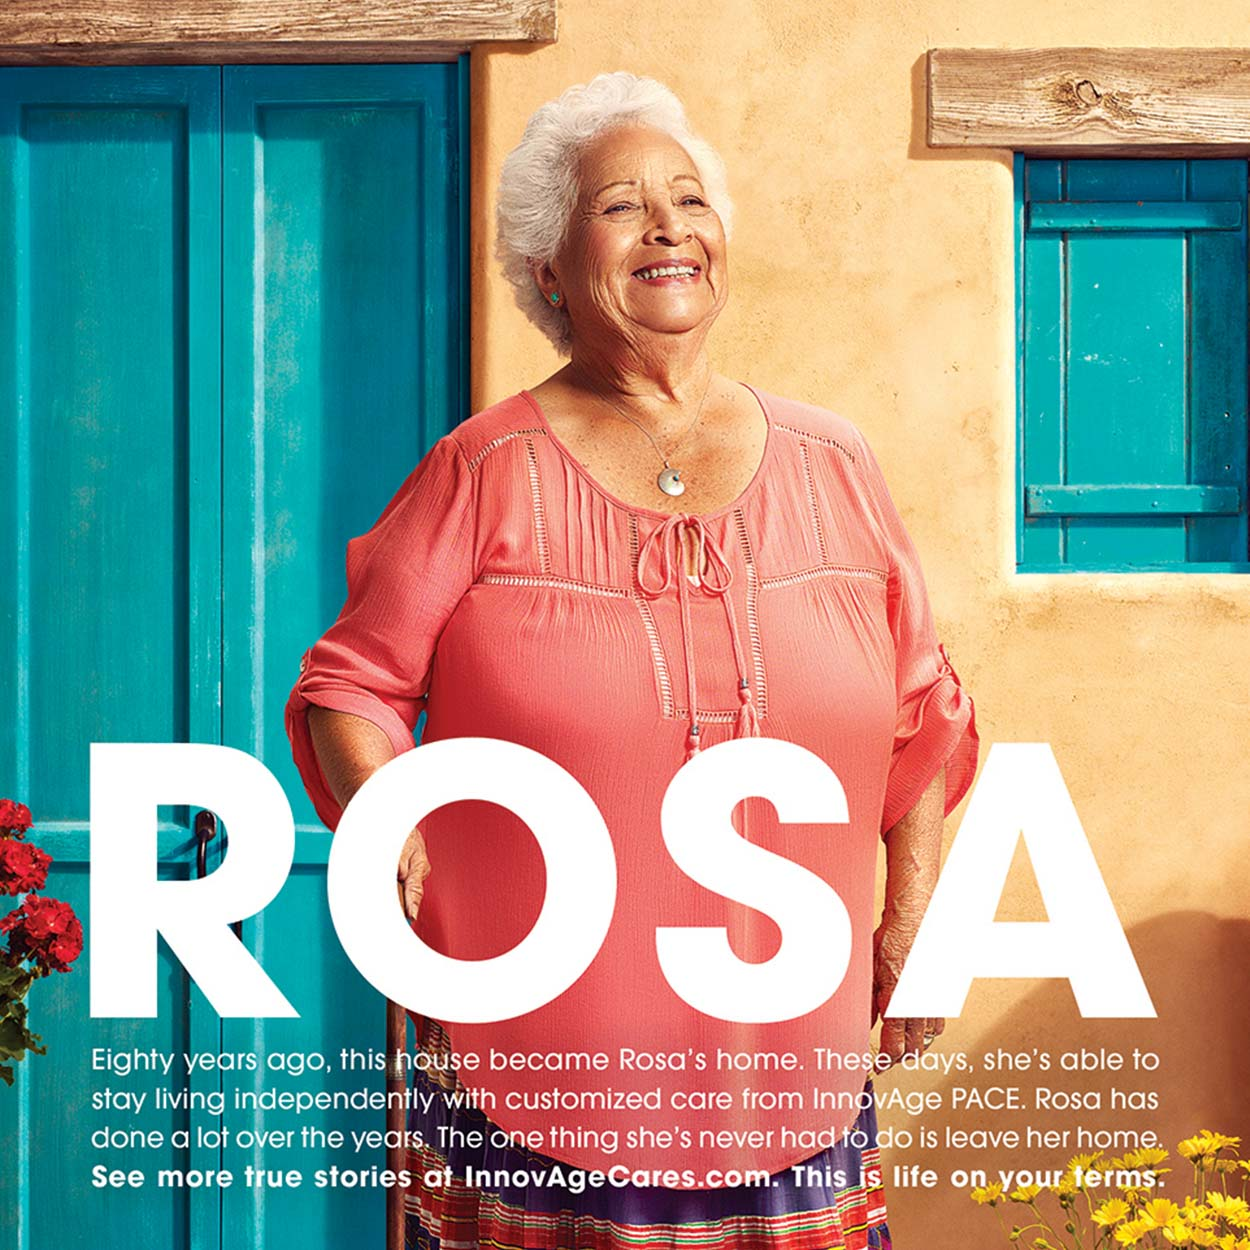 Print advertisement of a older women standing in front of a southwestern style building surround by flowers and plants.